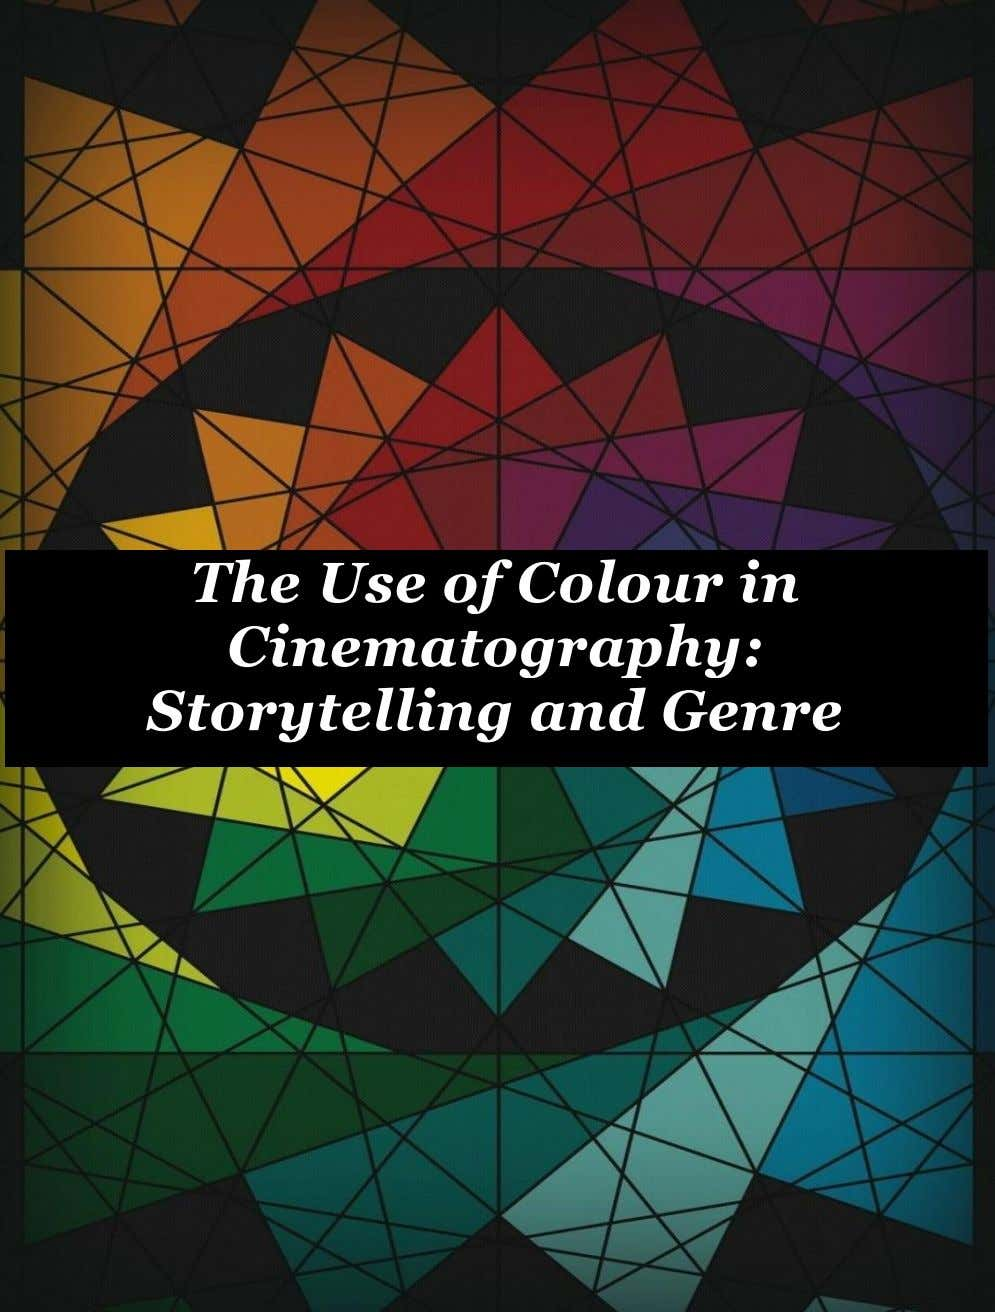 The Use of Colour in Cinematography: Storytelling and Genre